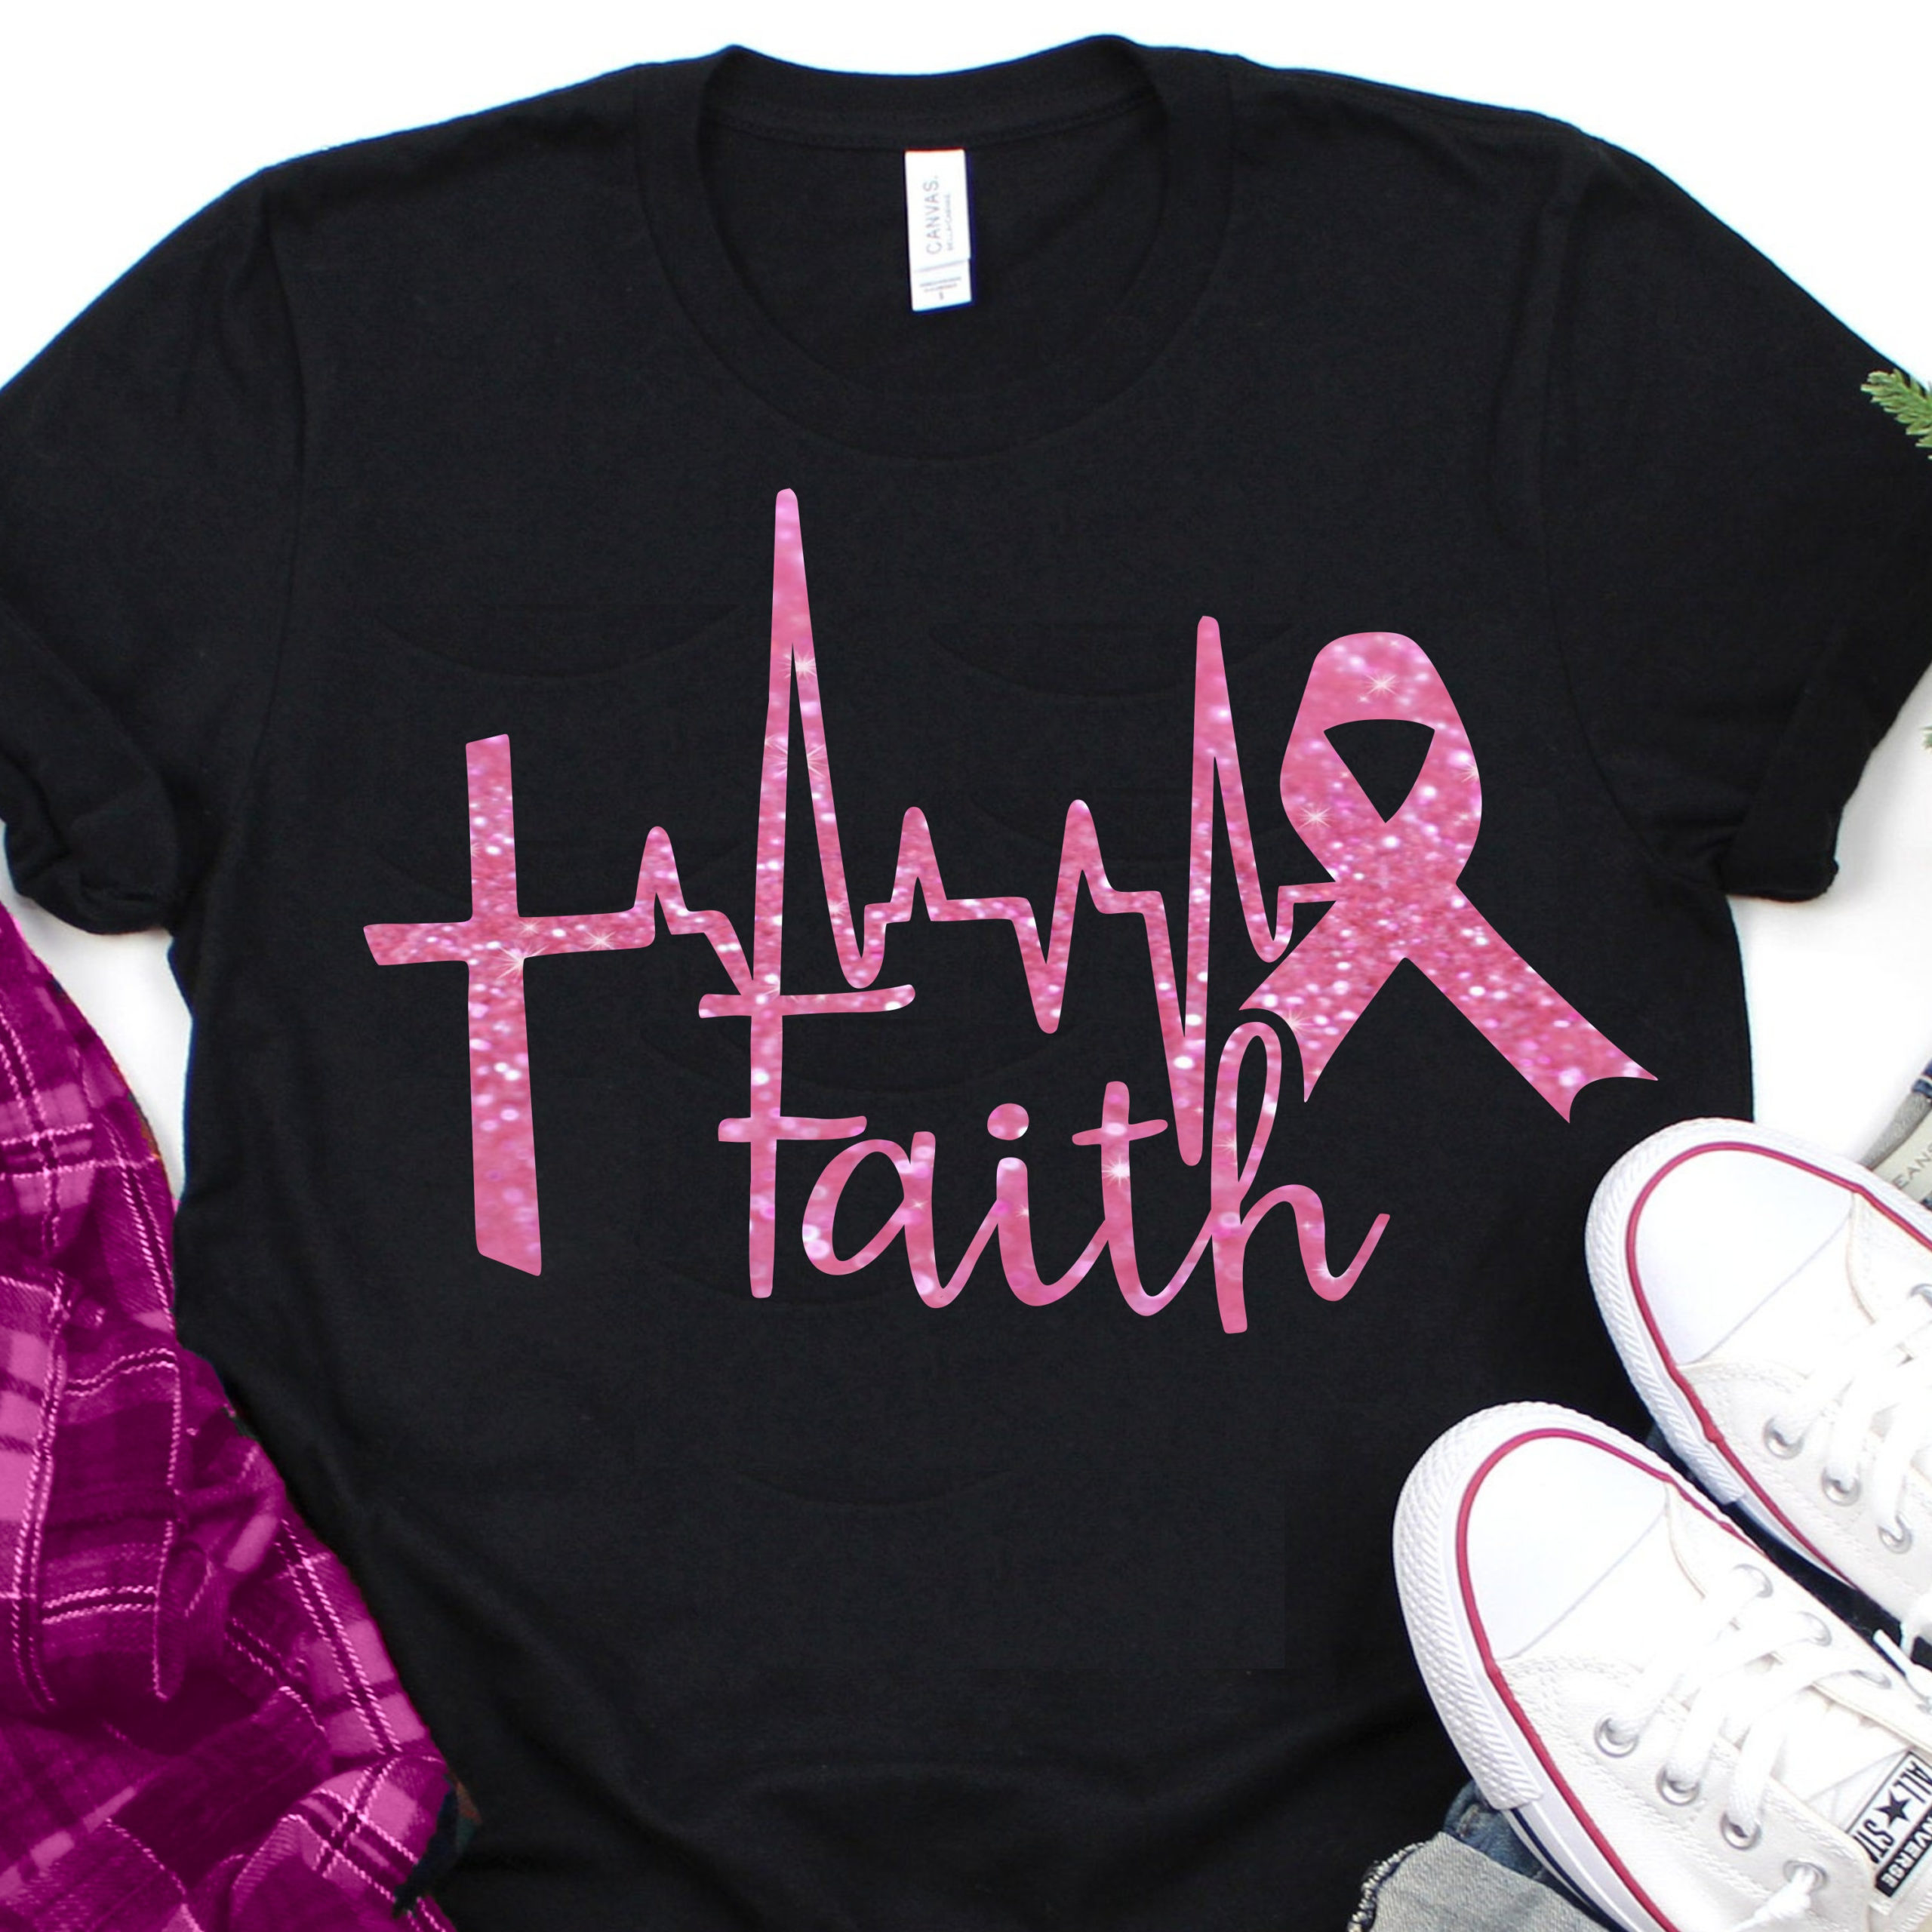 Cross-heartbeat-ribbonbreast-cancer-svgcancer-survivor-svgfaith-ribbon-svgbreast-cancer-tshirtcricut-designssilhouette-designs-5e220534